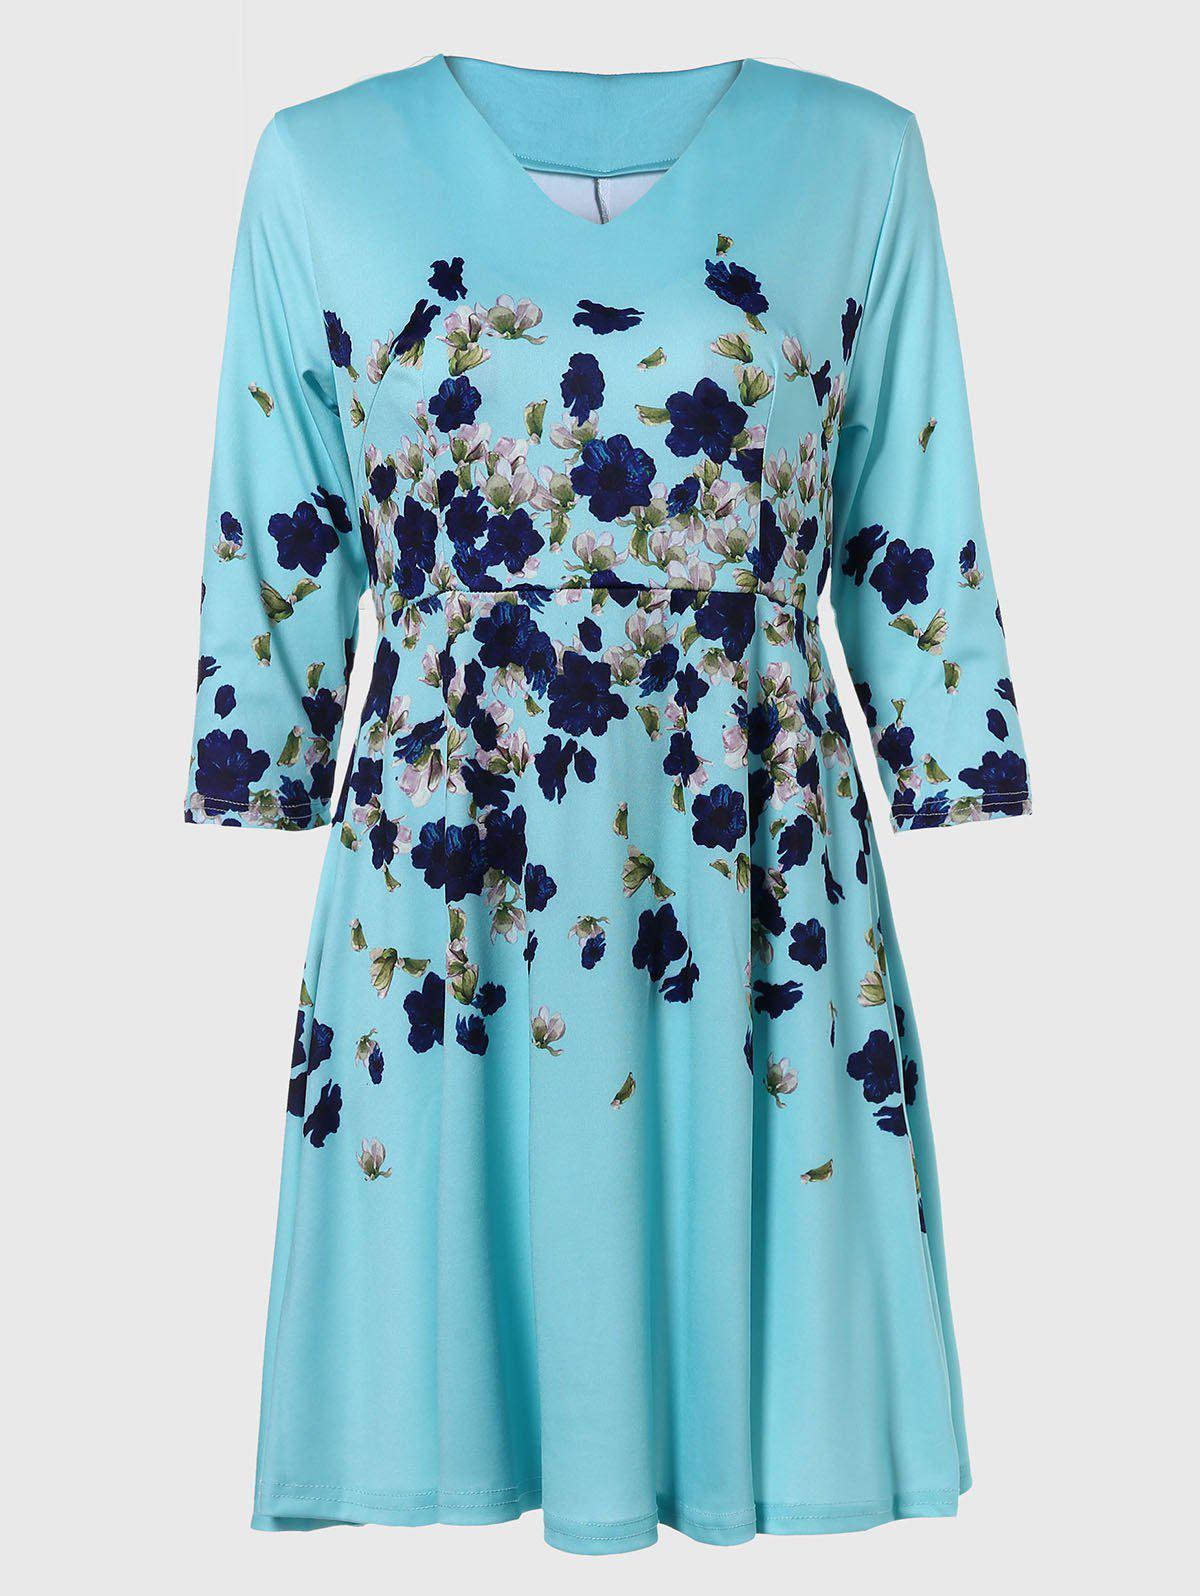 Fancy V-neck Positioning Flowers Print With3/4 sleeves A-line Dress